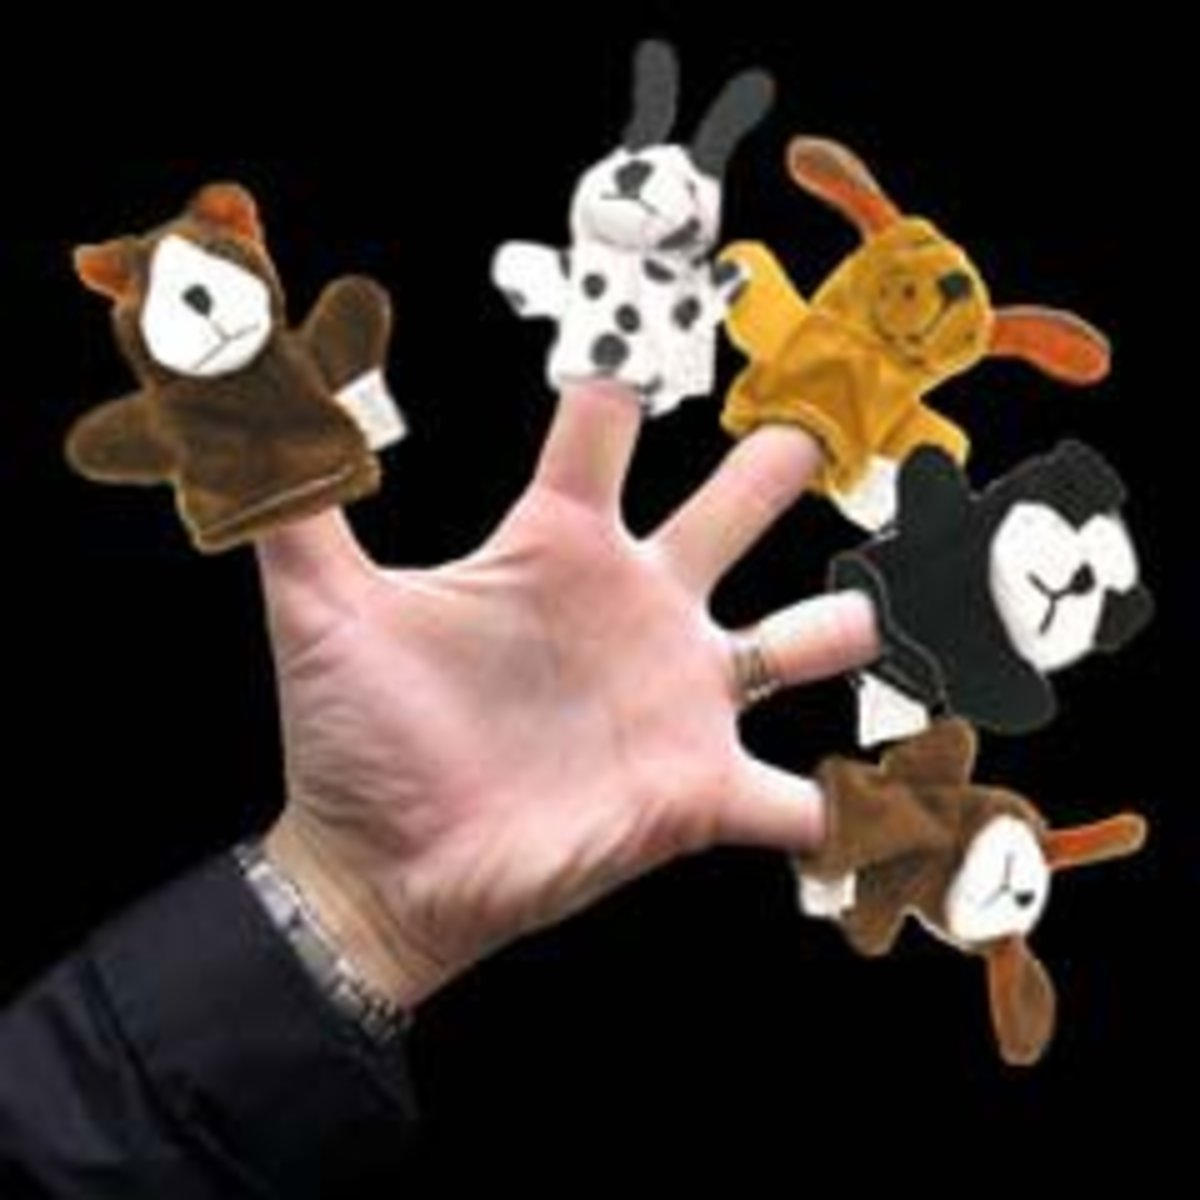 Buy dog finger puppets here!